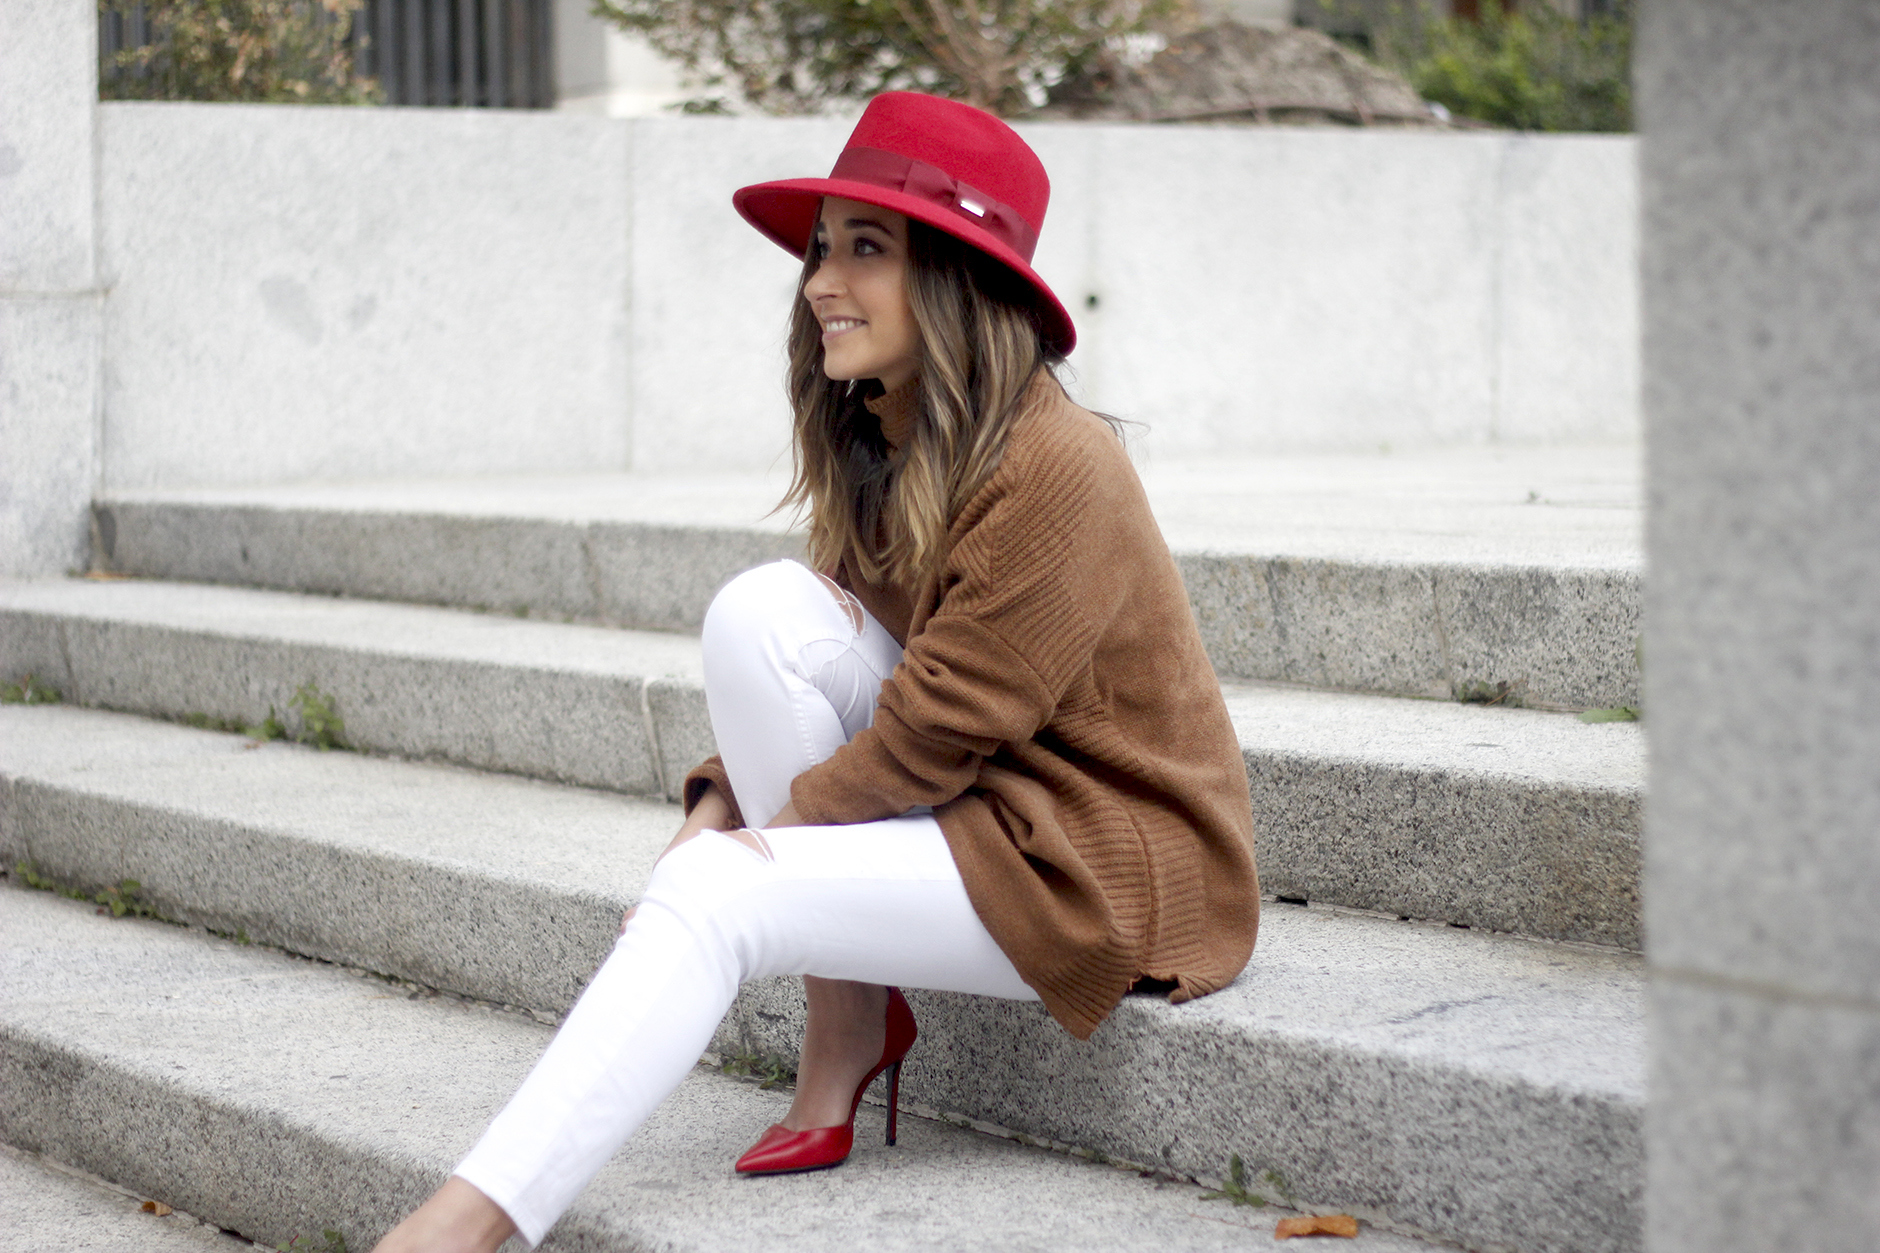 Turtleneck Sweater white jeans red heels red hat uterqüe outfit11